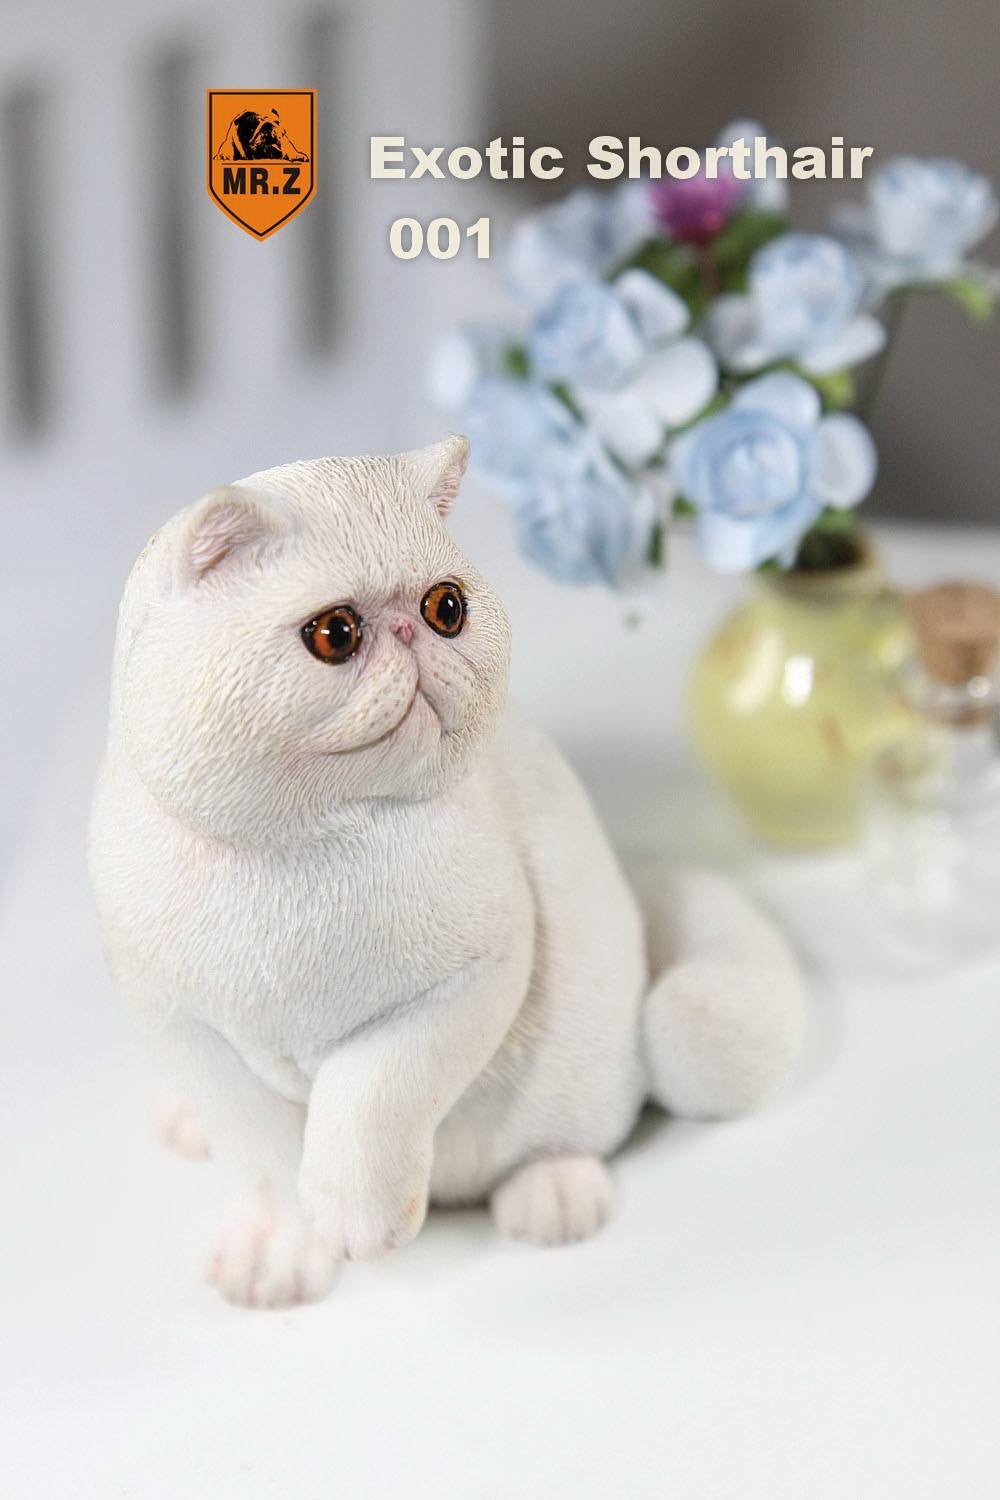 MR.Z - Real Animal Series No.8 - 1/6th Scale Exotic Shorthair Cat (Garfield) 001-005 - Marvelous Toys - 5